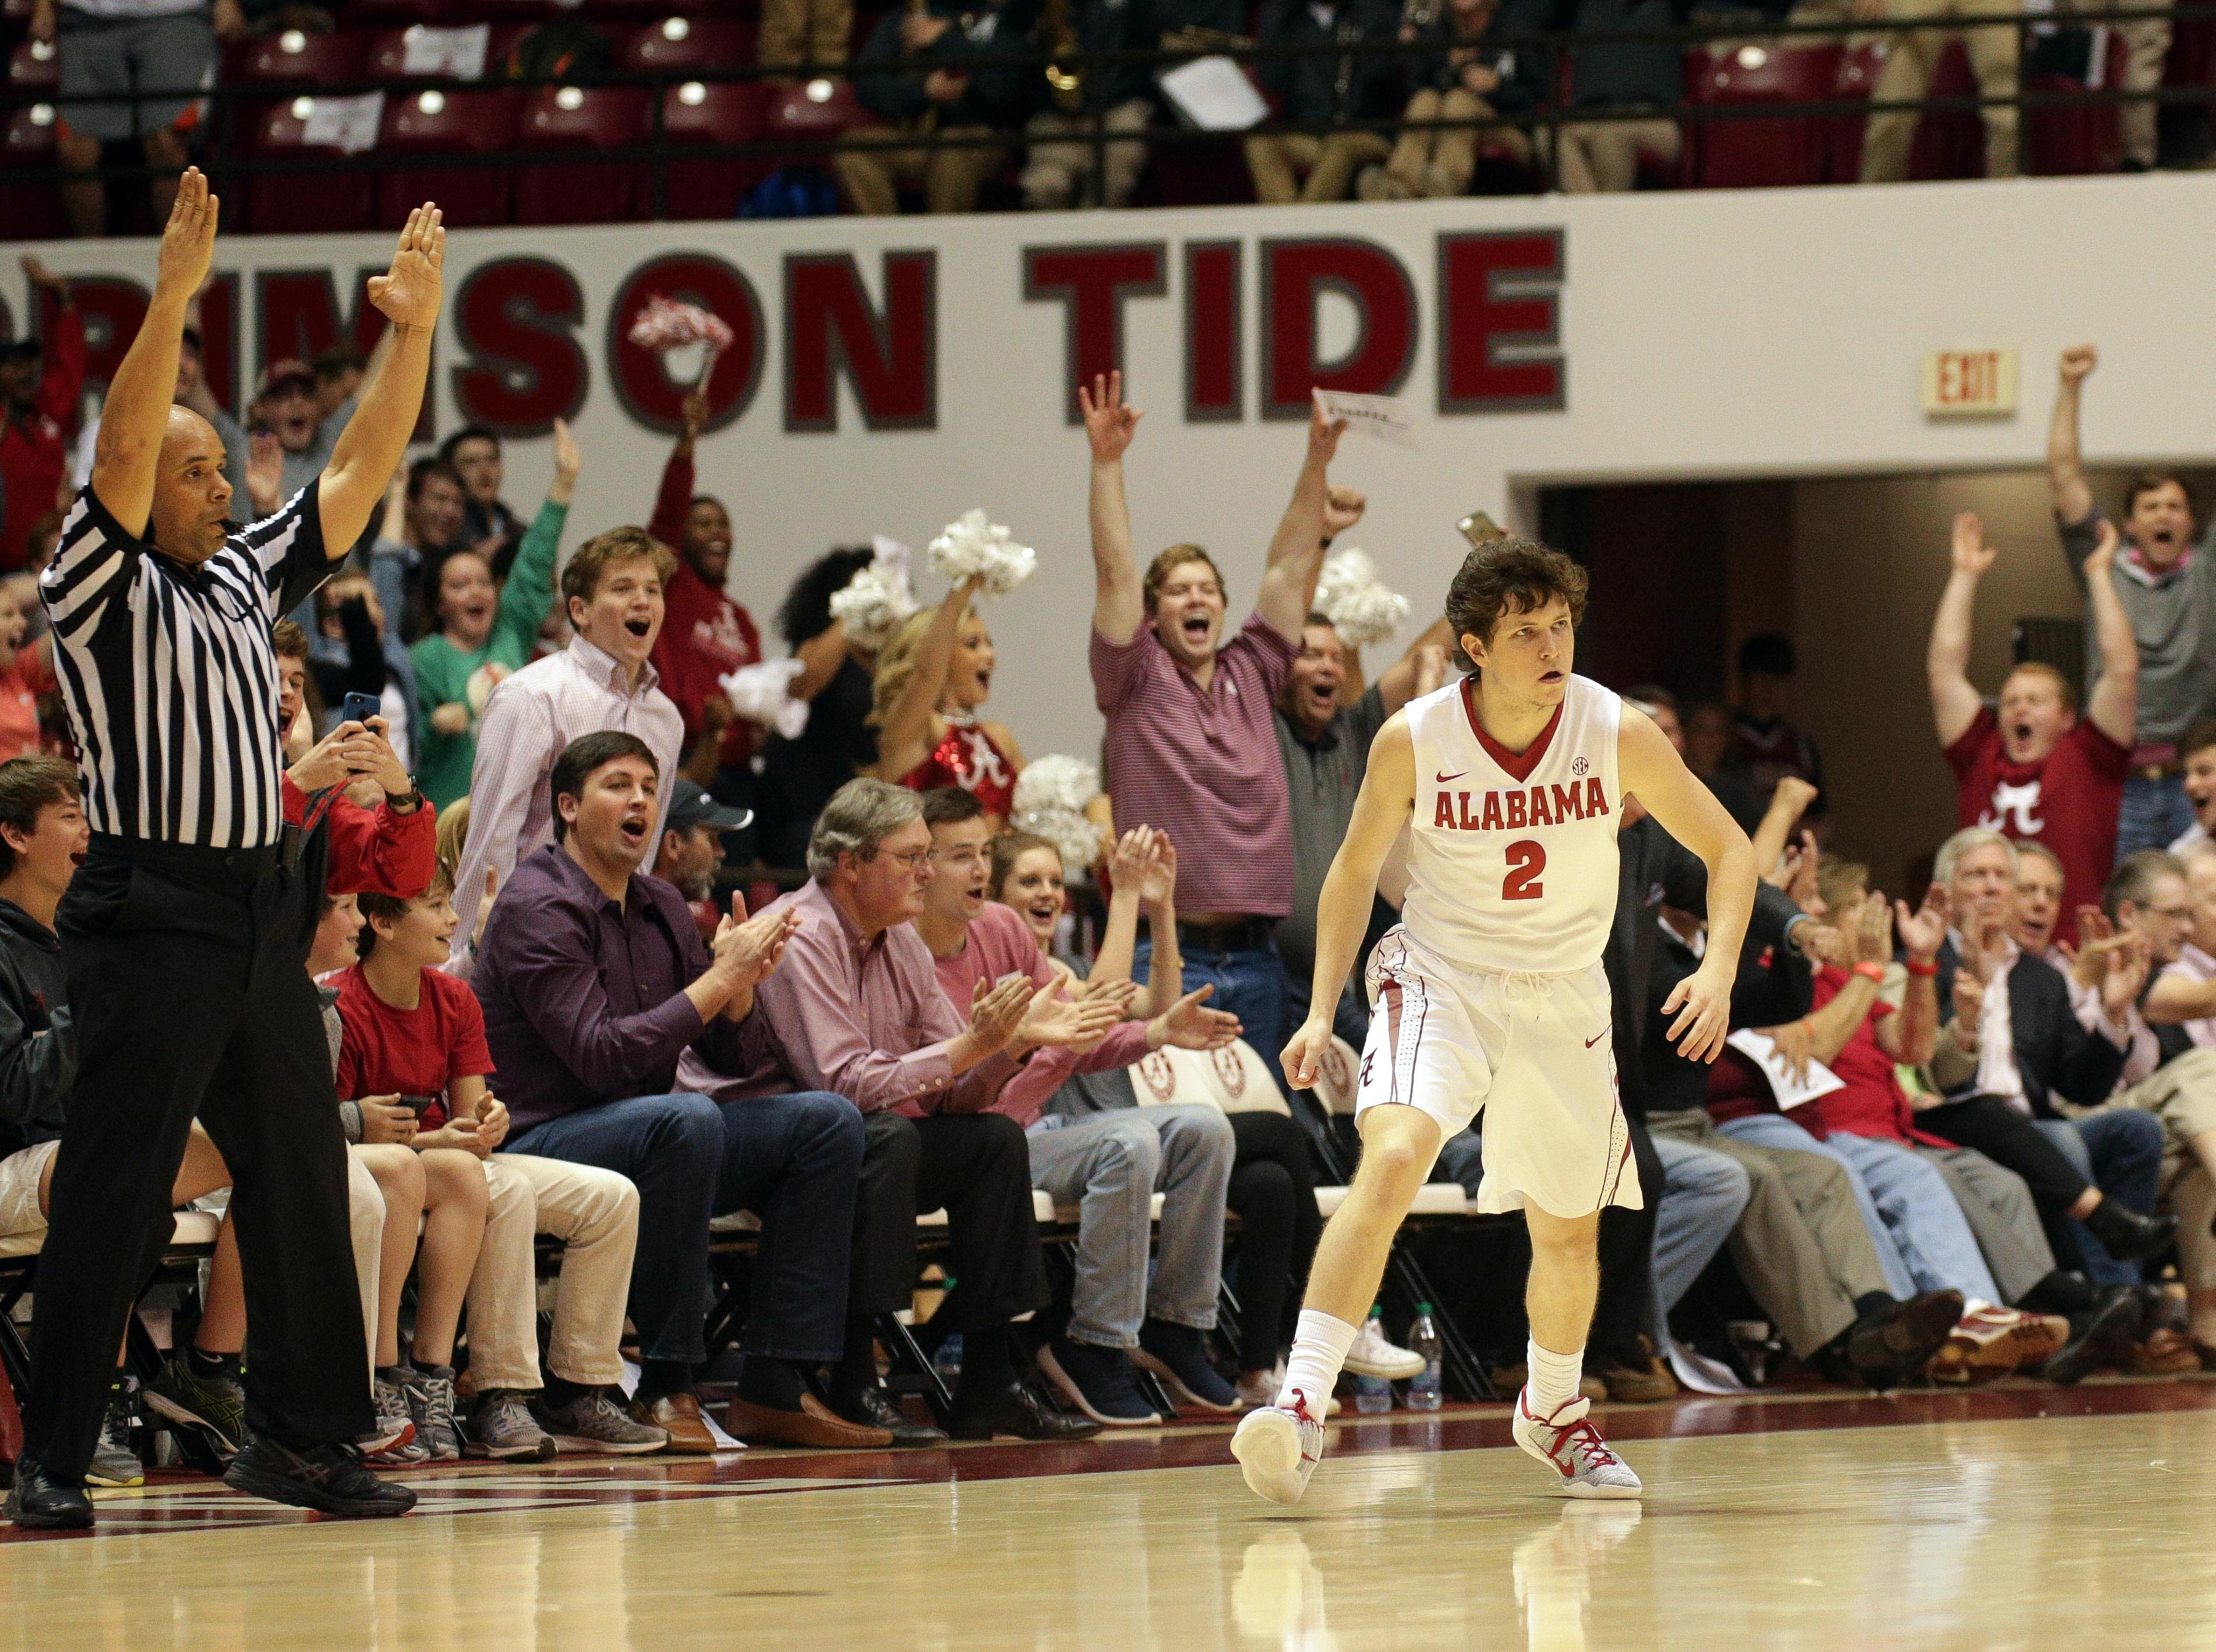 Mar 1, 2017; Tuscaloosa, AL, USA; The crowd reacts after Alabama Crimson Tide guard Lawson Schaffer (2) hits a 3 pointer late in the first half against Mississippi Rebels at Coleman Coliseum. Mandatory Credit: Marvin Gentry-USA TODAY Sports